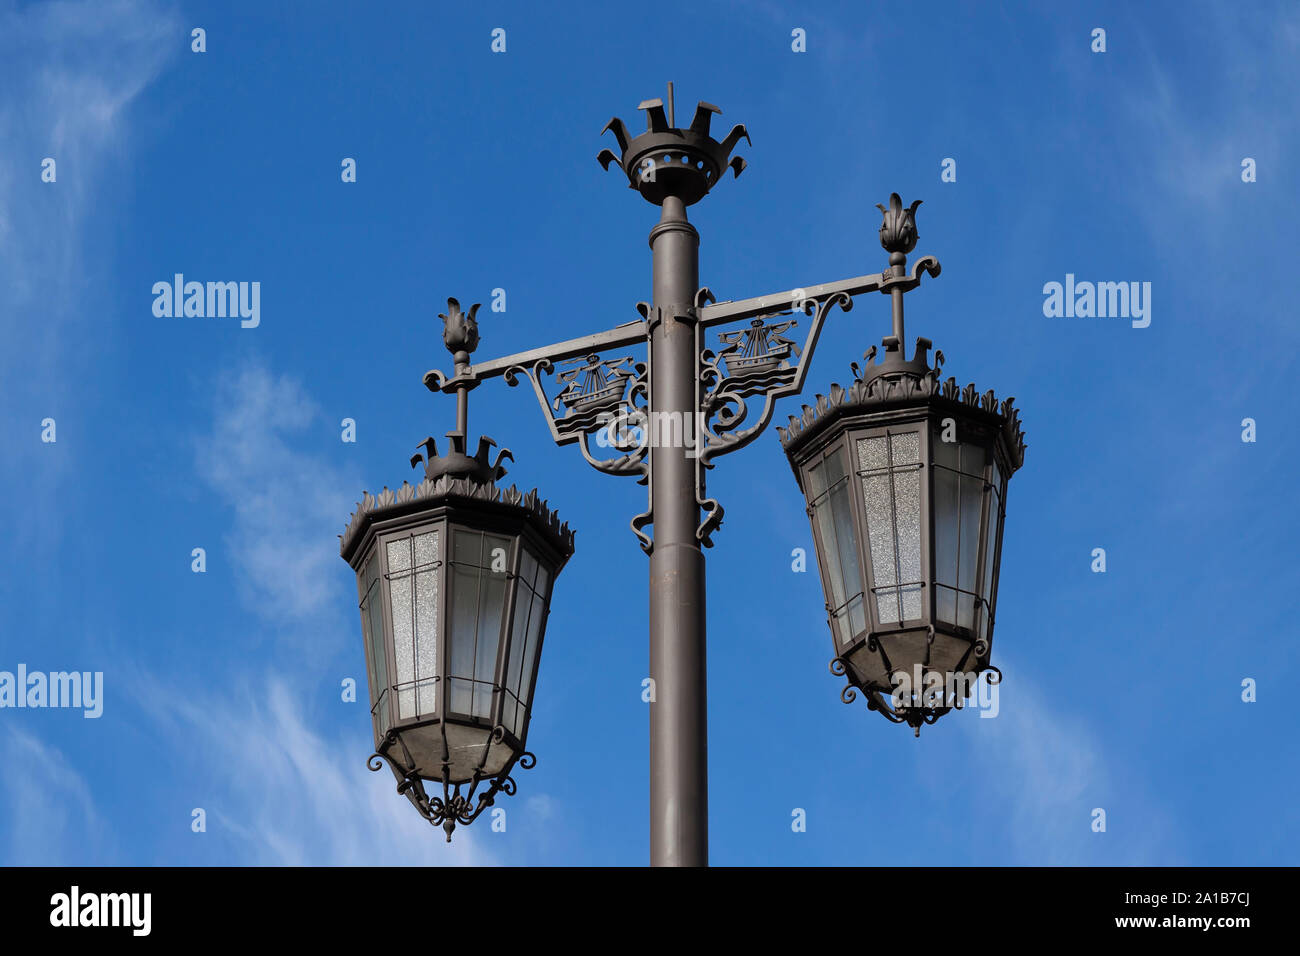 Old street lamp in Lisbon, Portugal Stock Photo